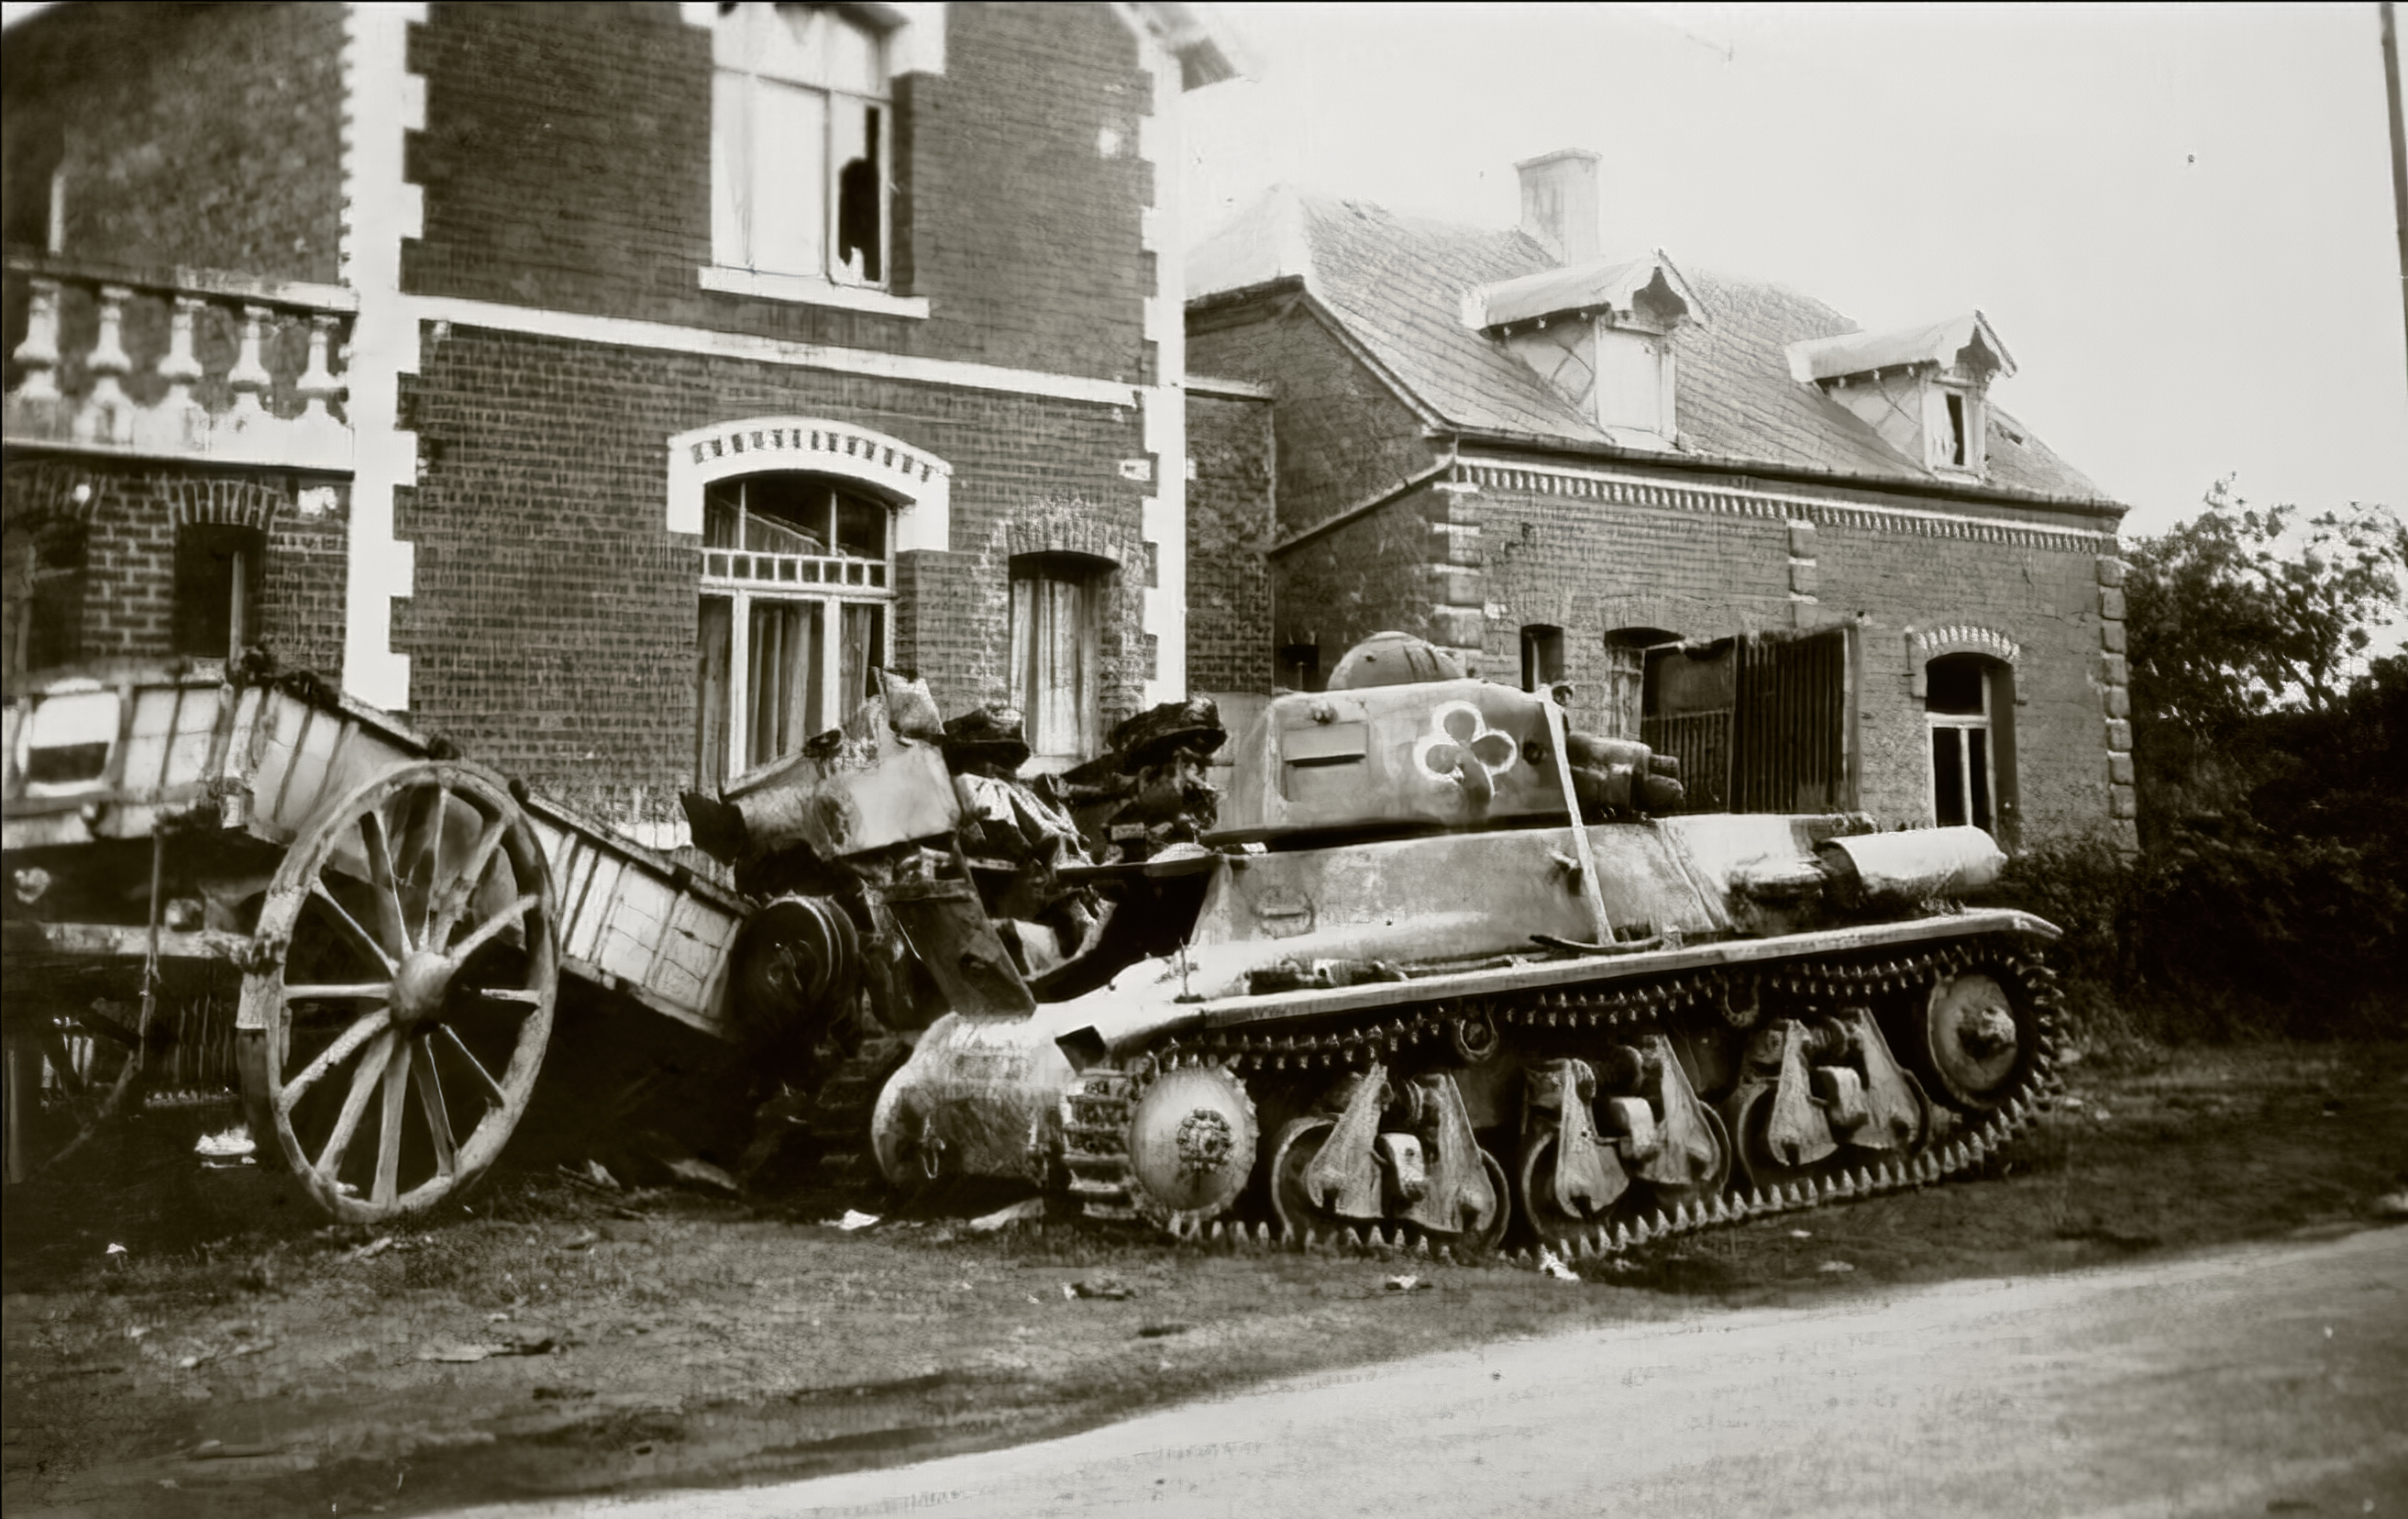 French Army Hotchkiss H35 left abandoned near a French village battle of France 1940 ebay 01